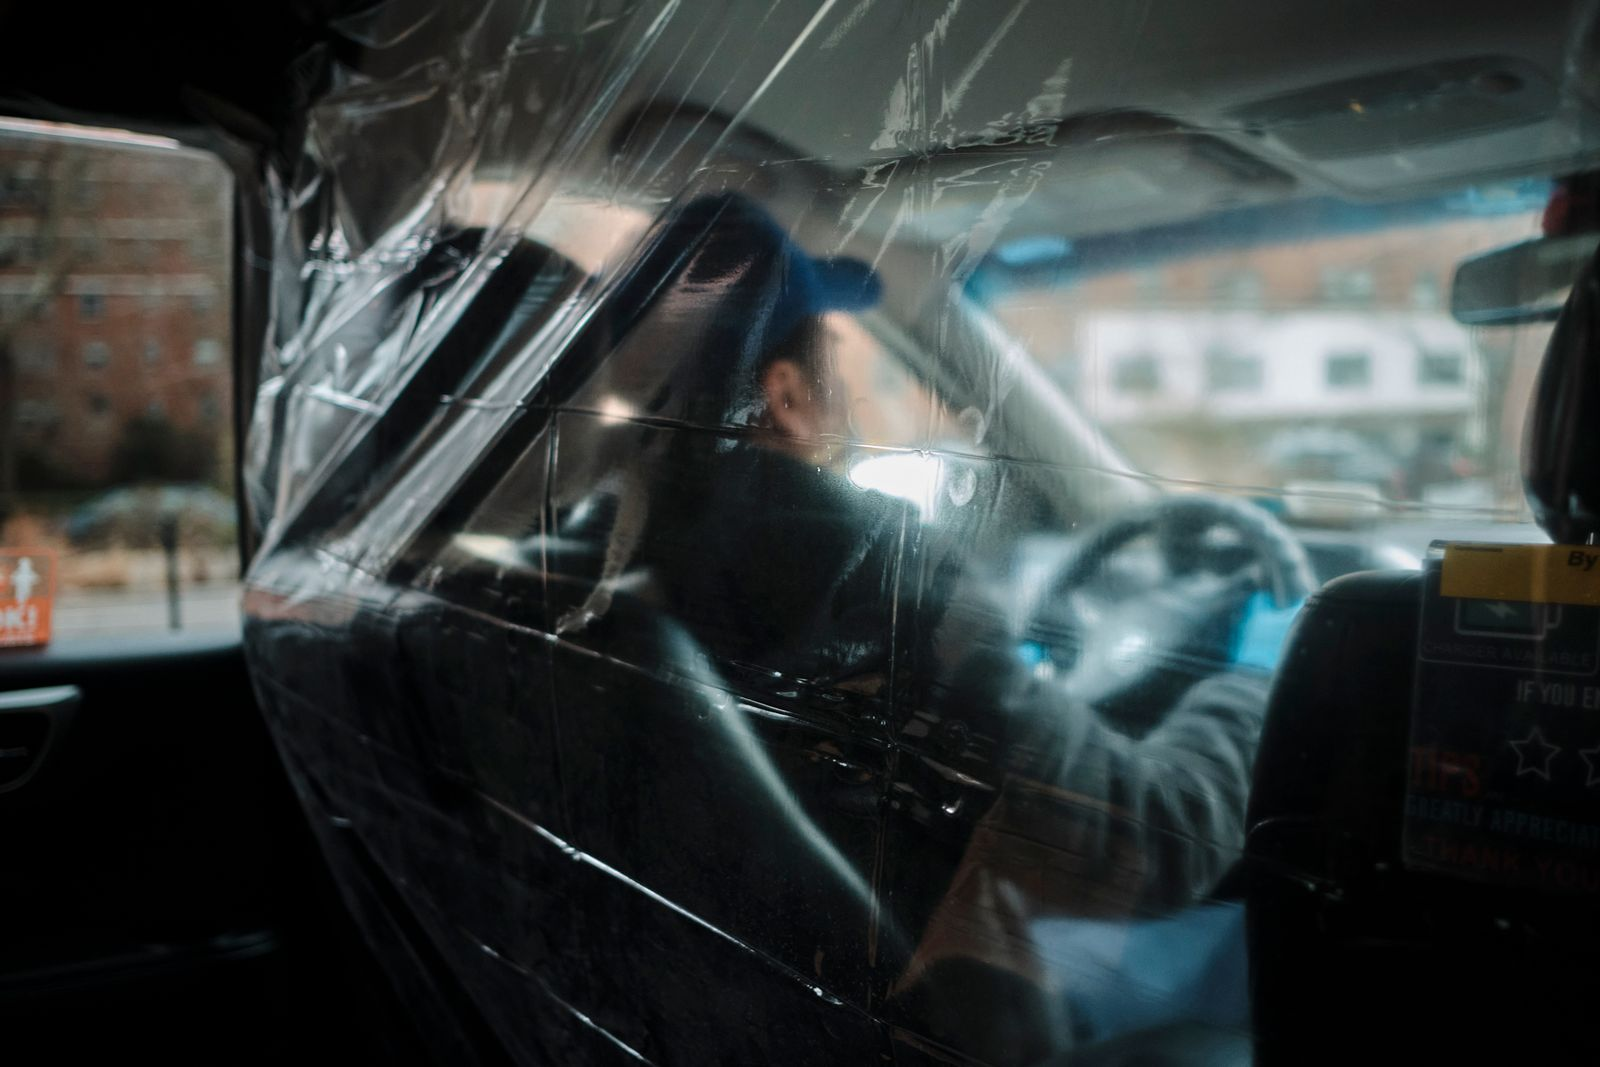 A cab driver uses plastic to shield himself from the coronavirus, in New York, March 16, 2020. (John Taggart/The New York Times)